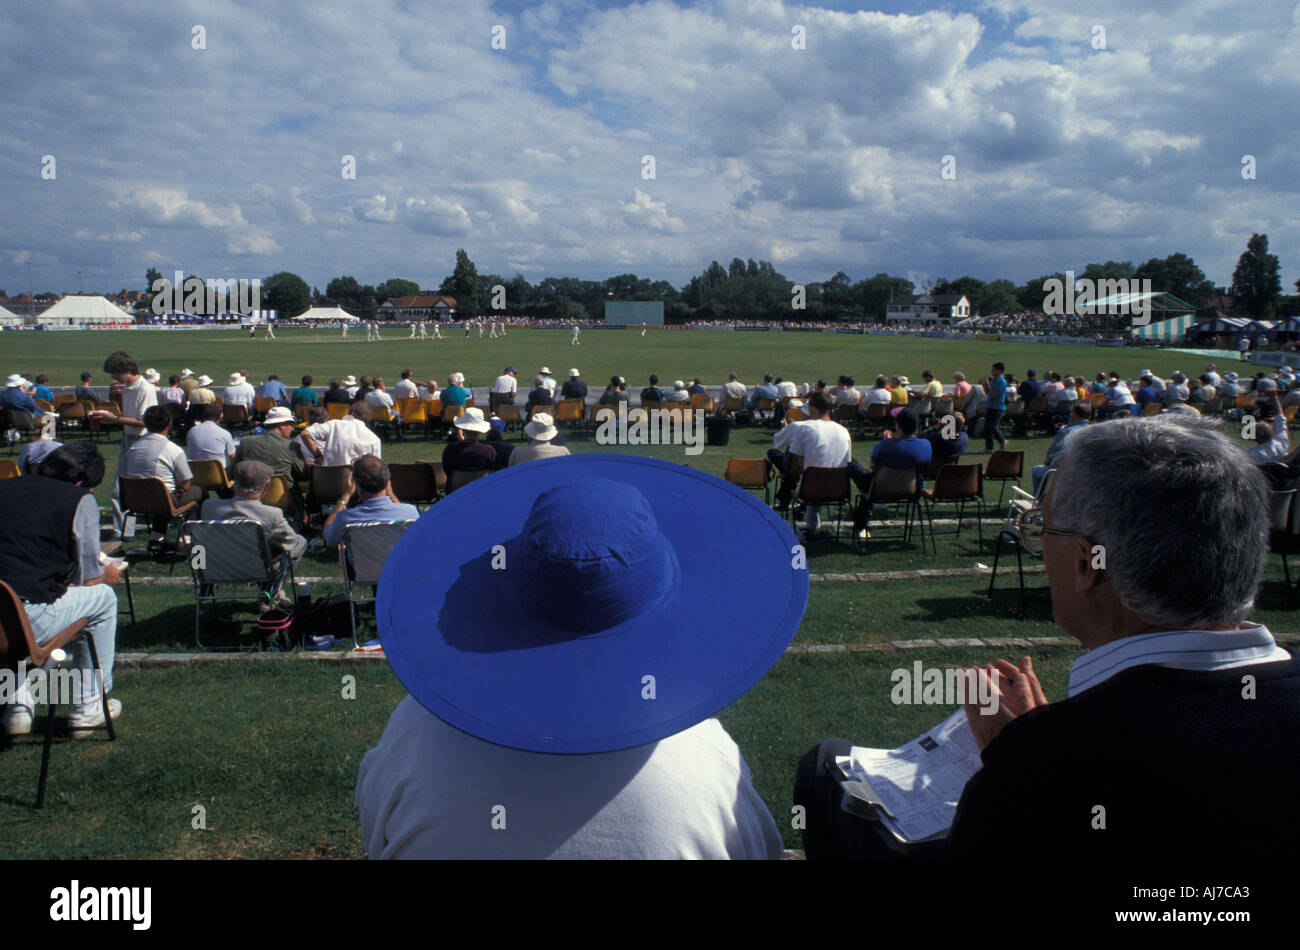 County cricket match Essex v Leicestershire. Southchurch Park. Southend-on-Sea. Essex. July 1993. - Stock Image